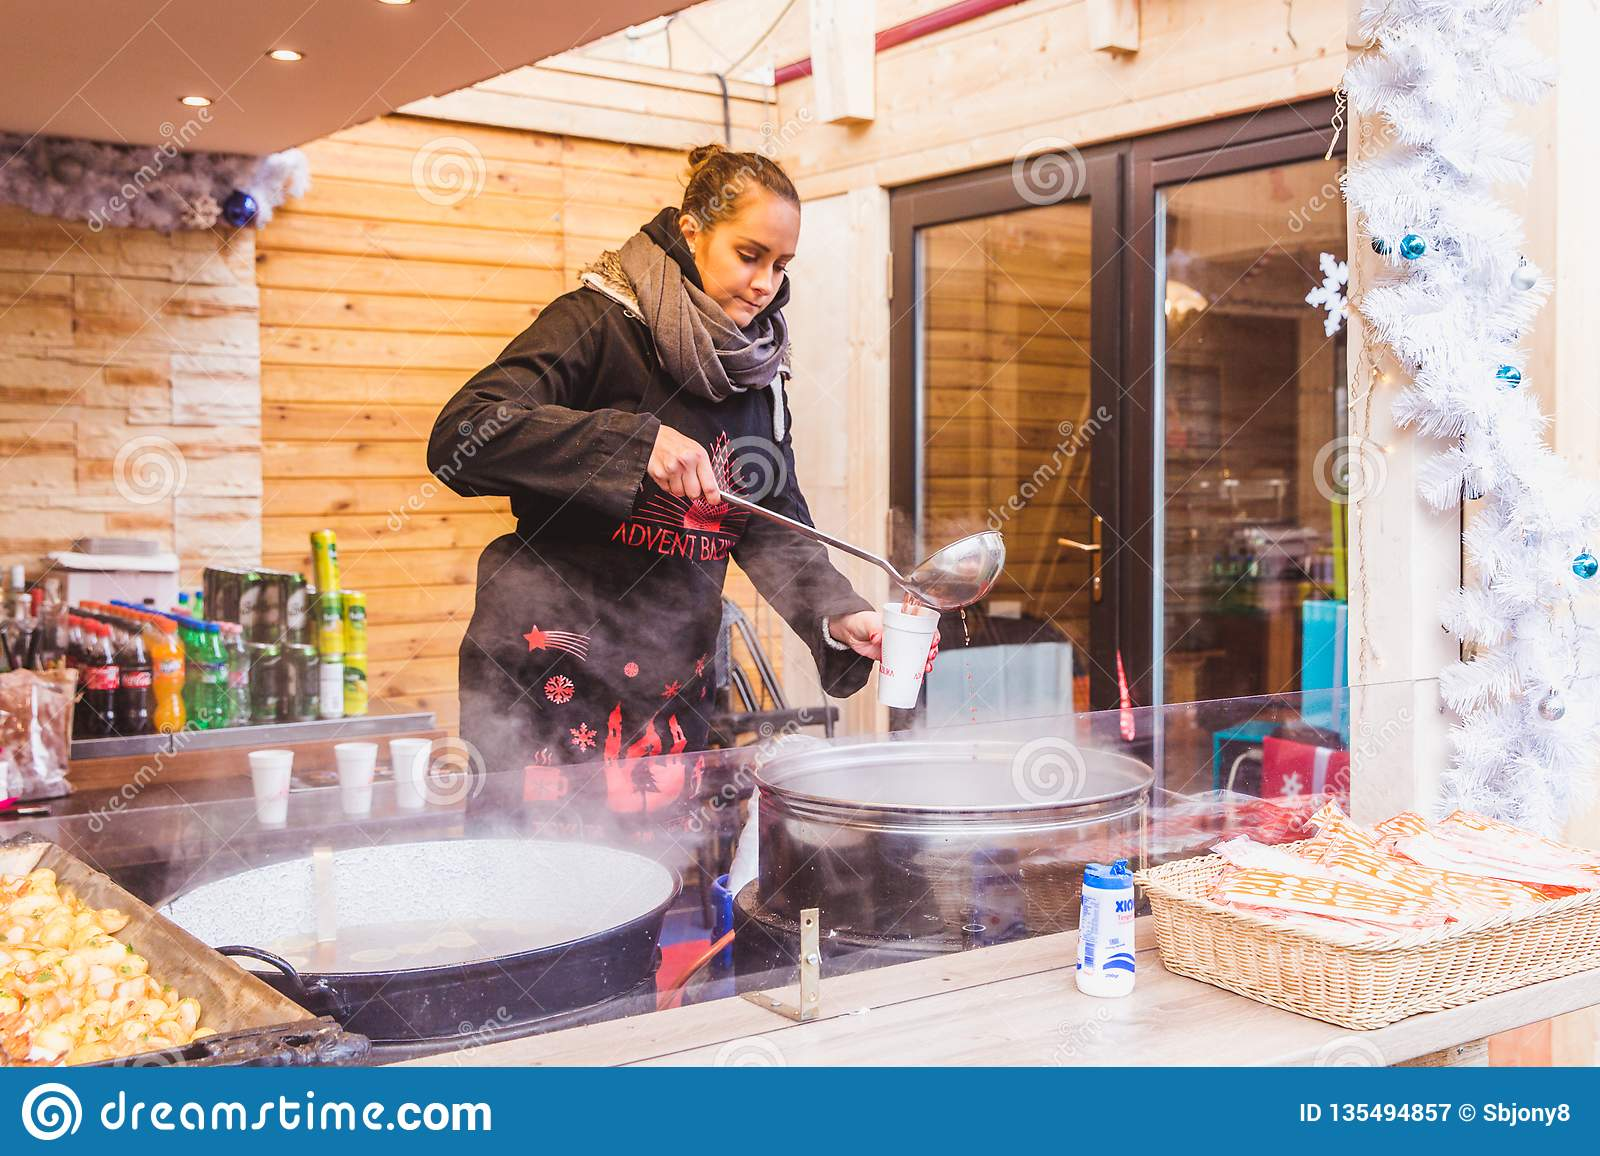 BUDAPEST, HUNGARY - DECEMBER 19, 2018: Tourists and local people enjoying the beautiful Christmas Market at St. Stephen